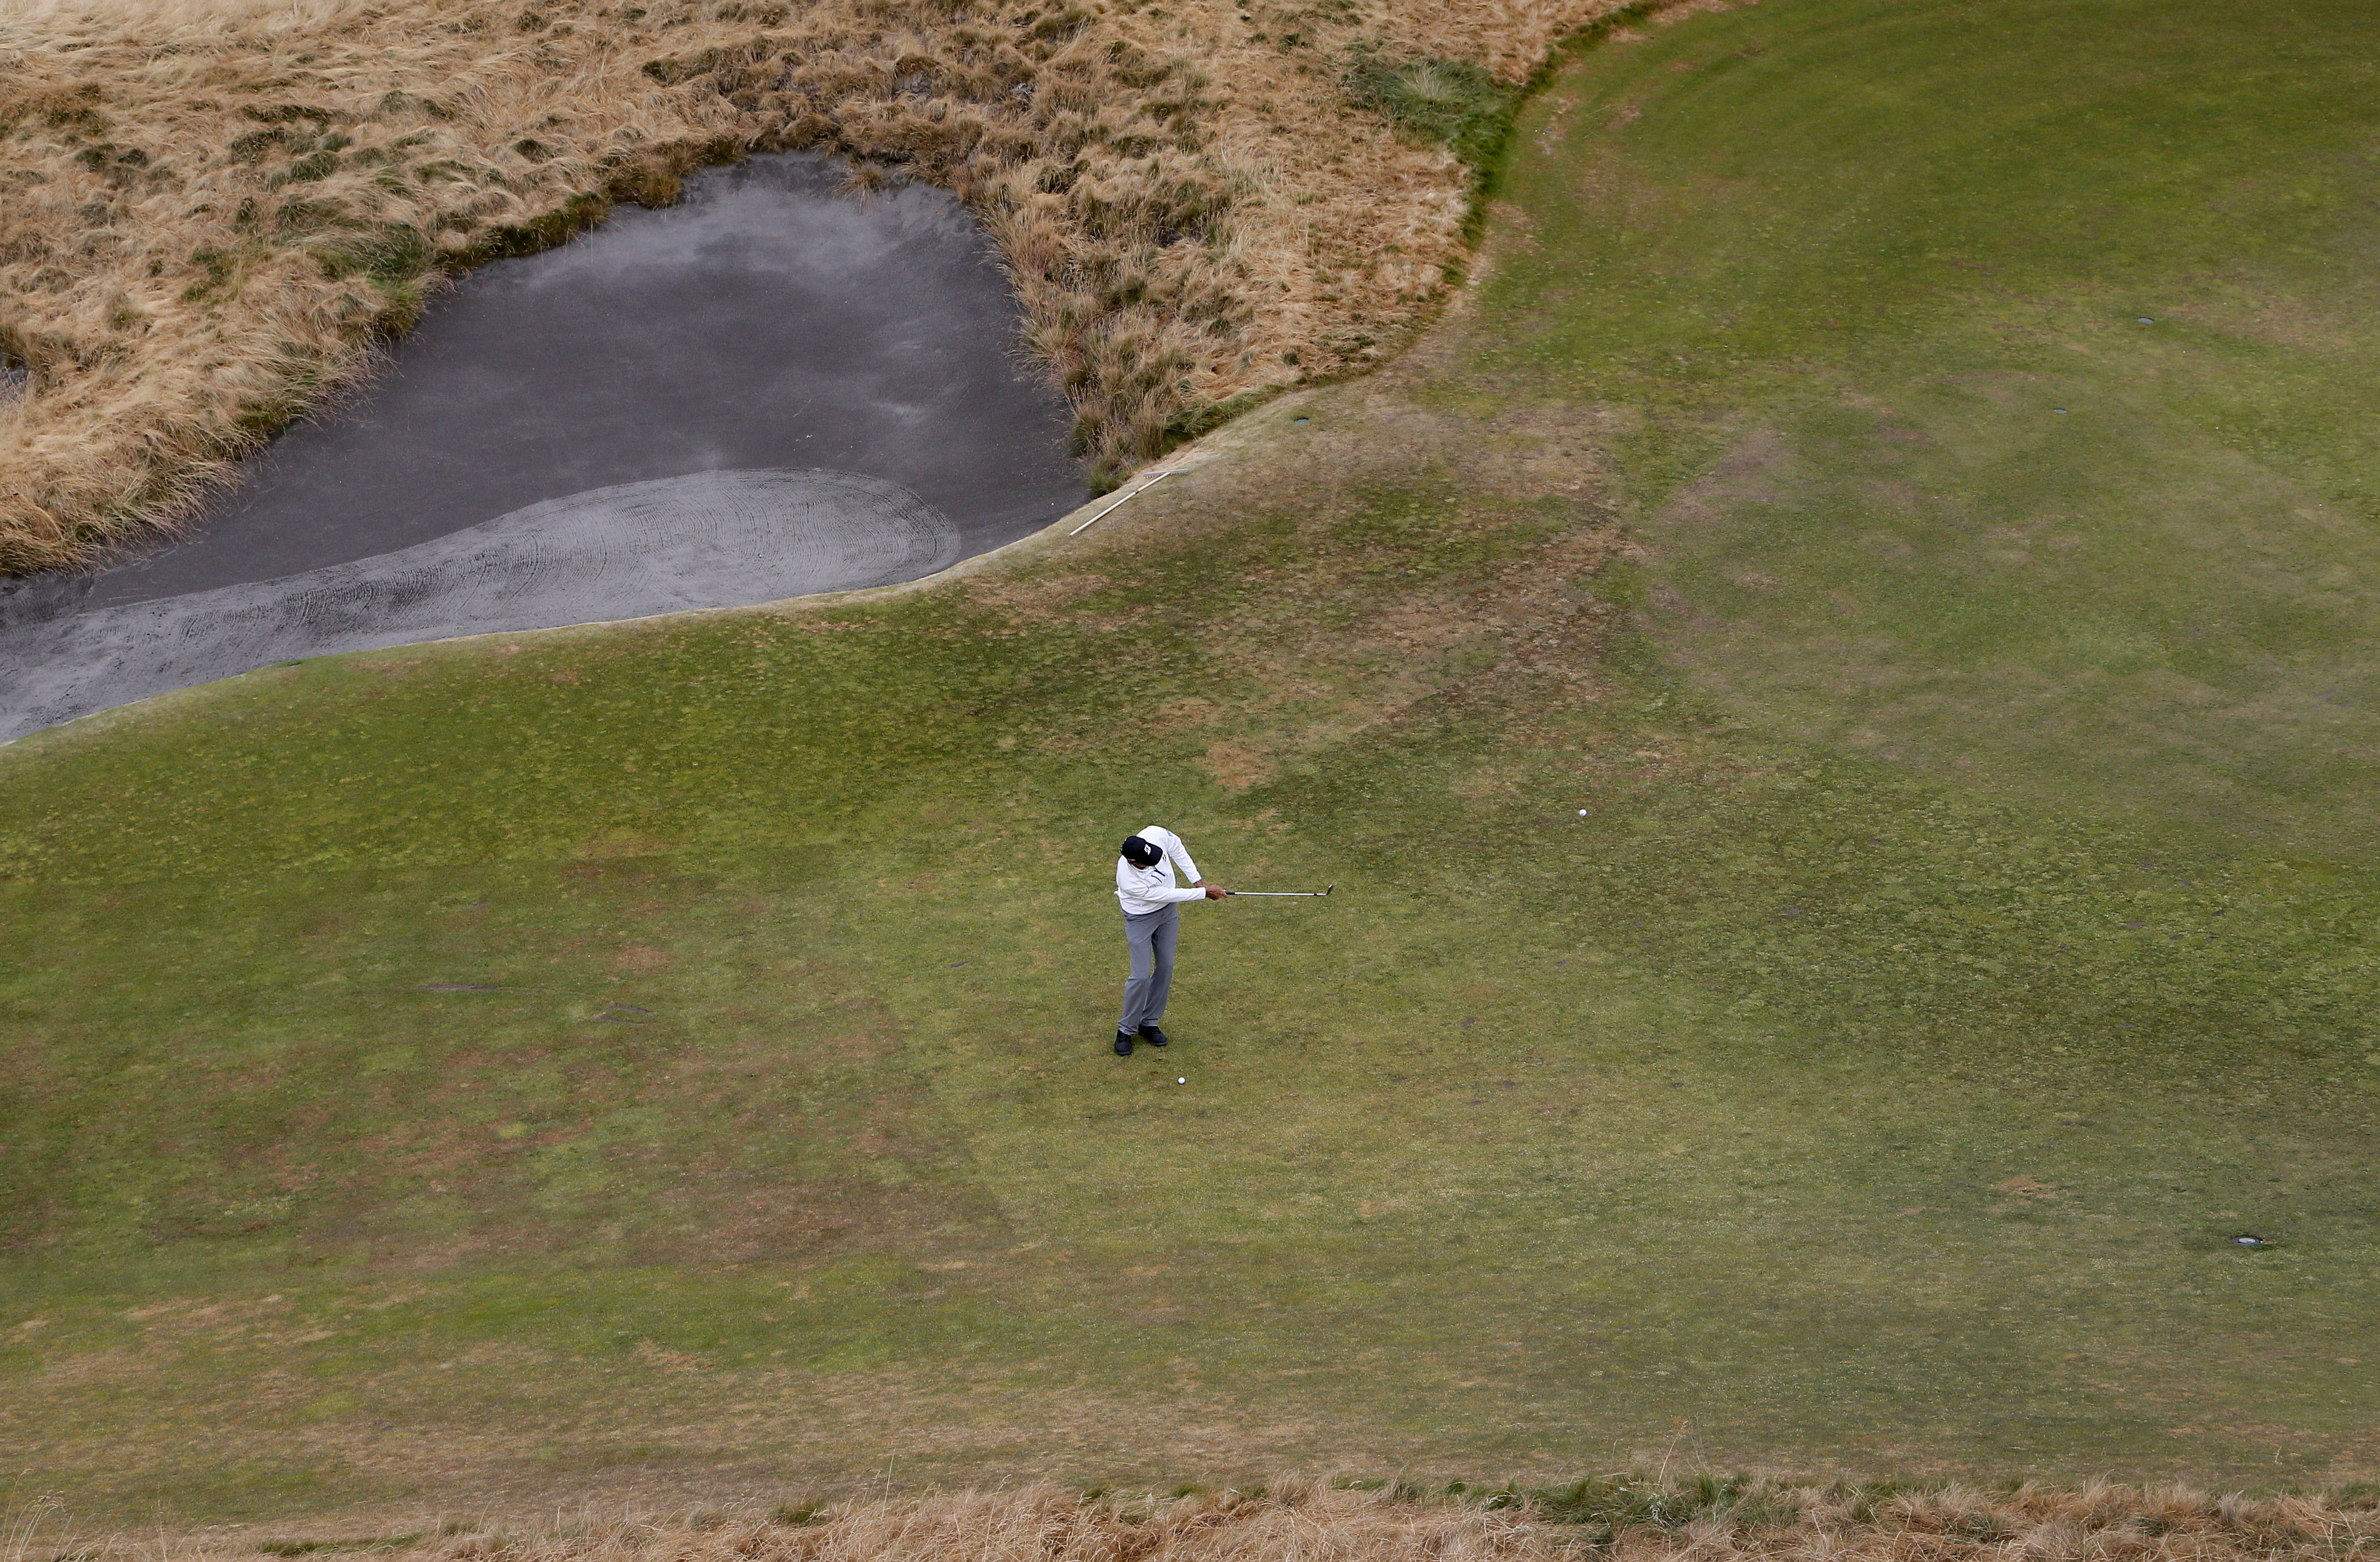 Matt Kuchar hits a chip on the 12th hole during a practice round for the U.S. Open golf tournament at Chambers Bay on Tuesday, June 16, 2015 in University Place, Wash. (AP Photo/Matt York)